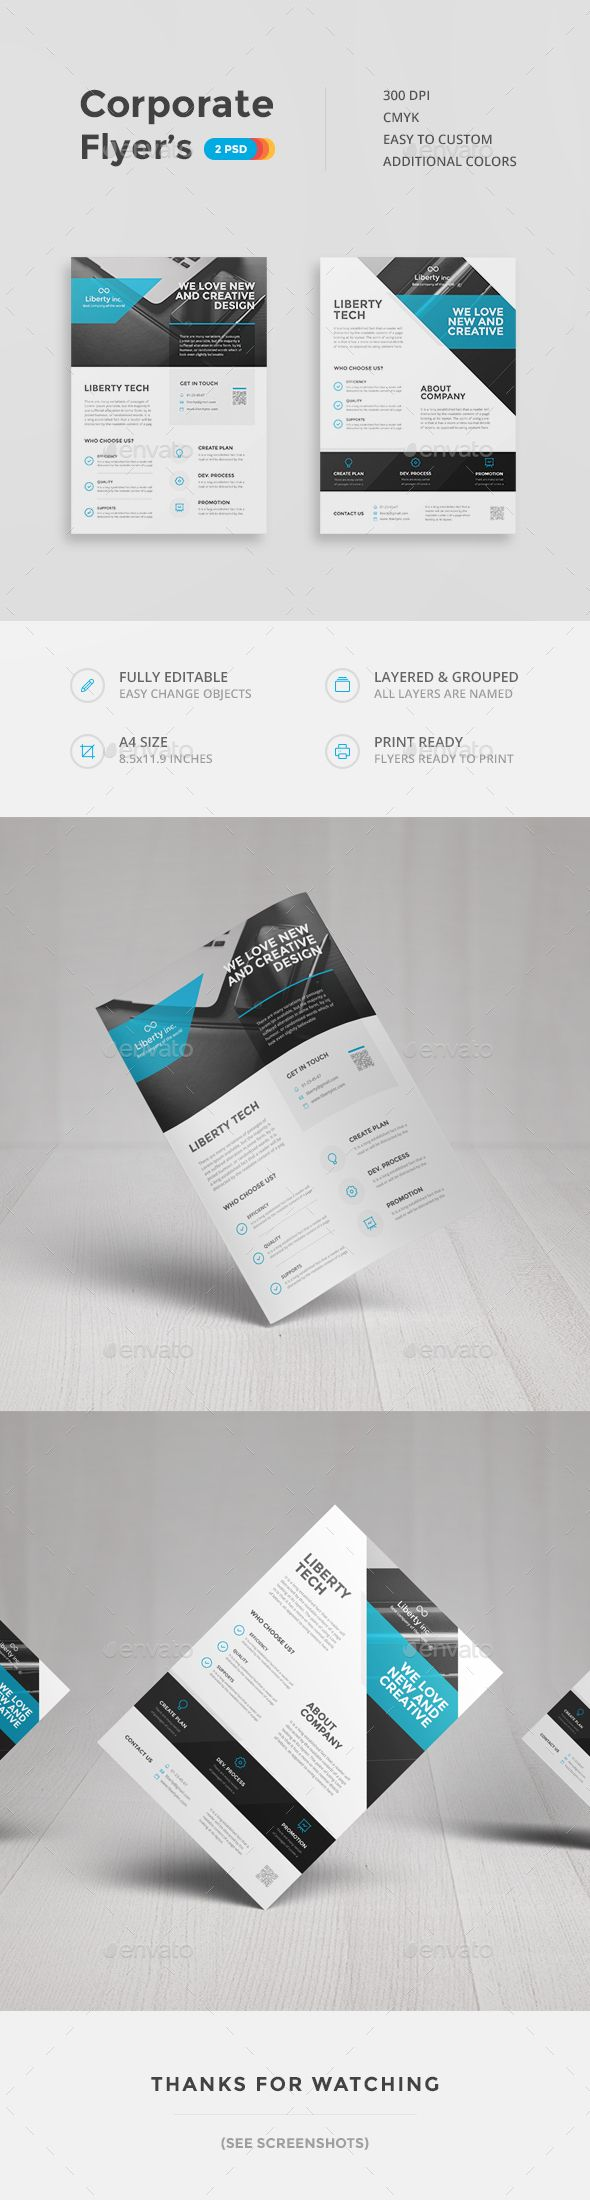 Corporate Flyers Template PSD #design Download: http://graphicriver.net/item/corporate-flyers/13736788?ref=ksioks